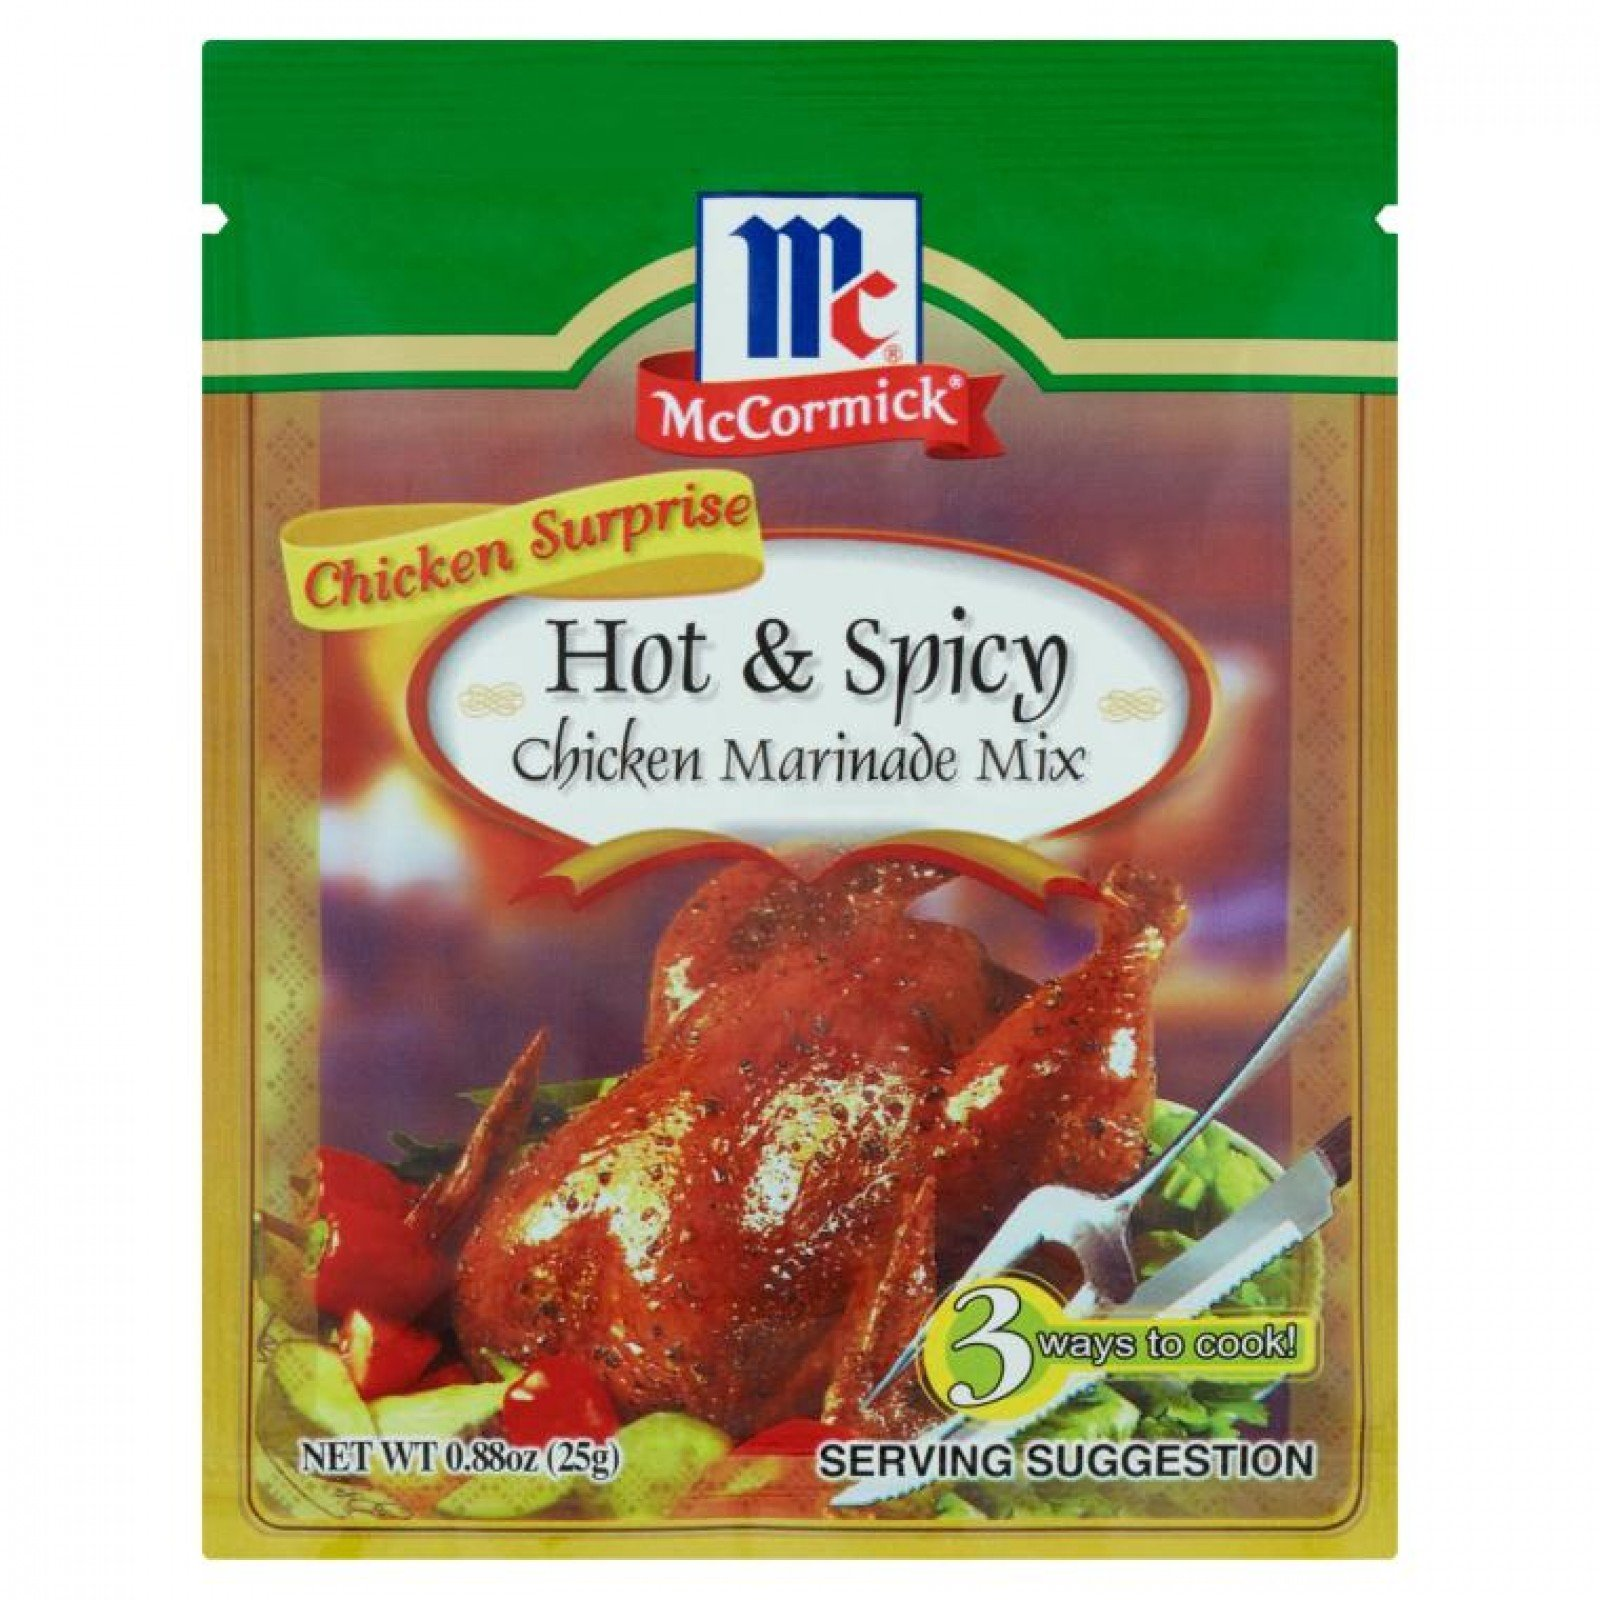 MCCORMICK CHICKEN SURPRISE MARINADE MIXES Hot & Spicy 25gm/pack (24 packs  per carton) Imported from the Philippines - GBA P Code: S0750